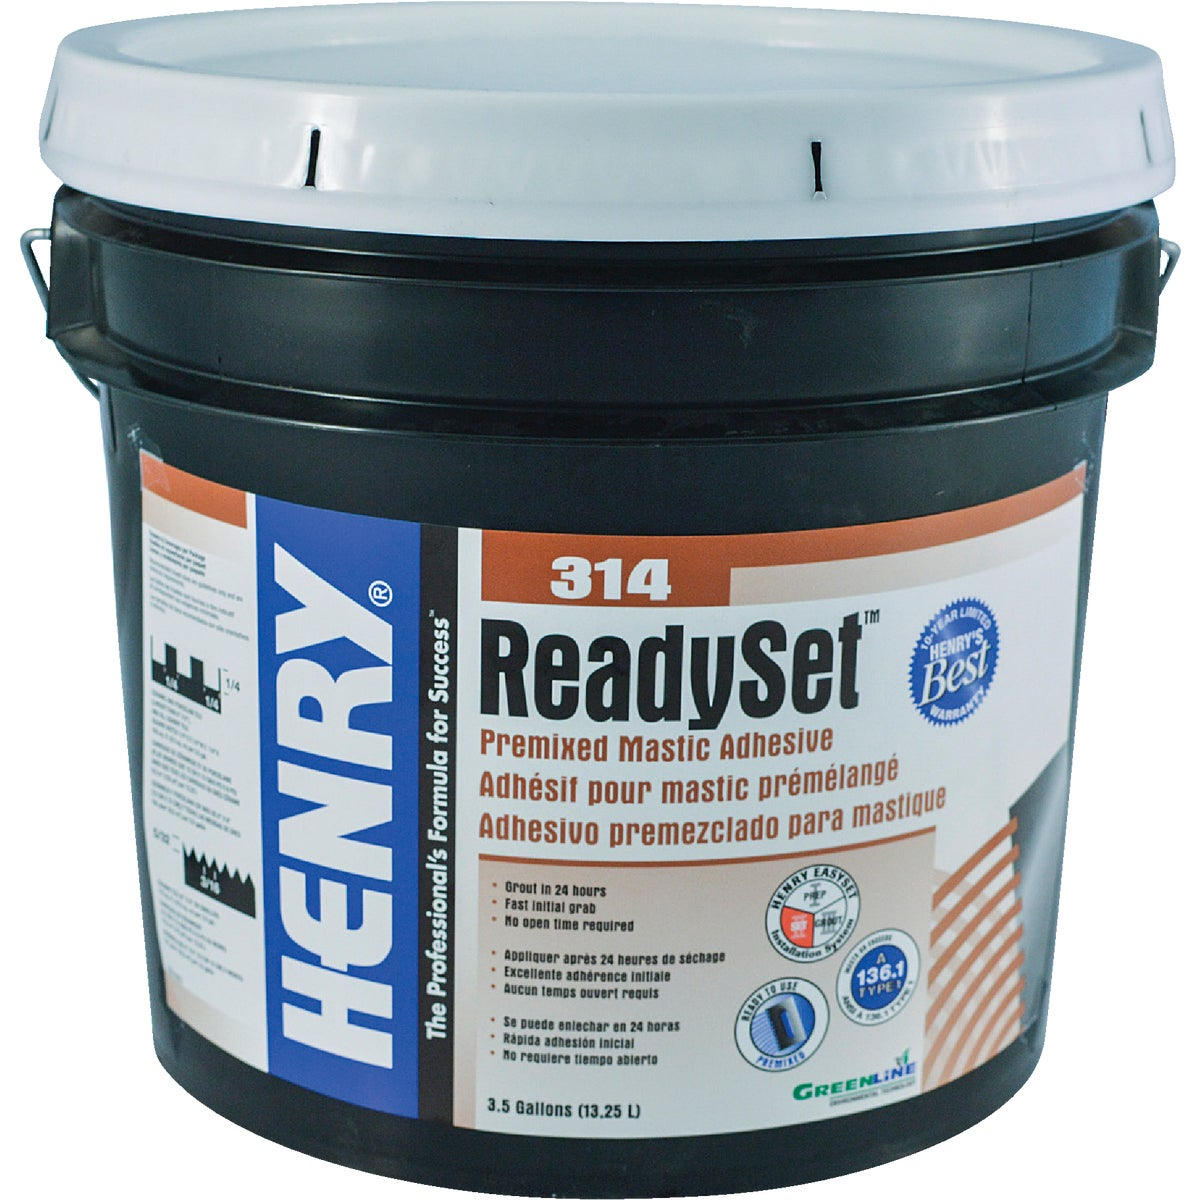 3.5G H314 CERMC ADHESIVE - 12257 by Henry W W Company